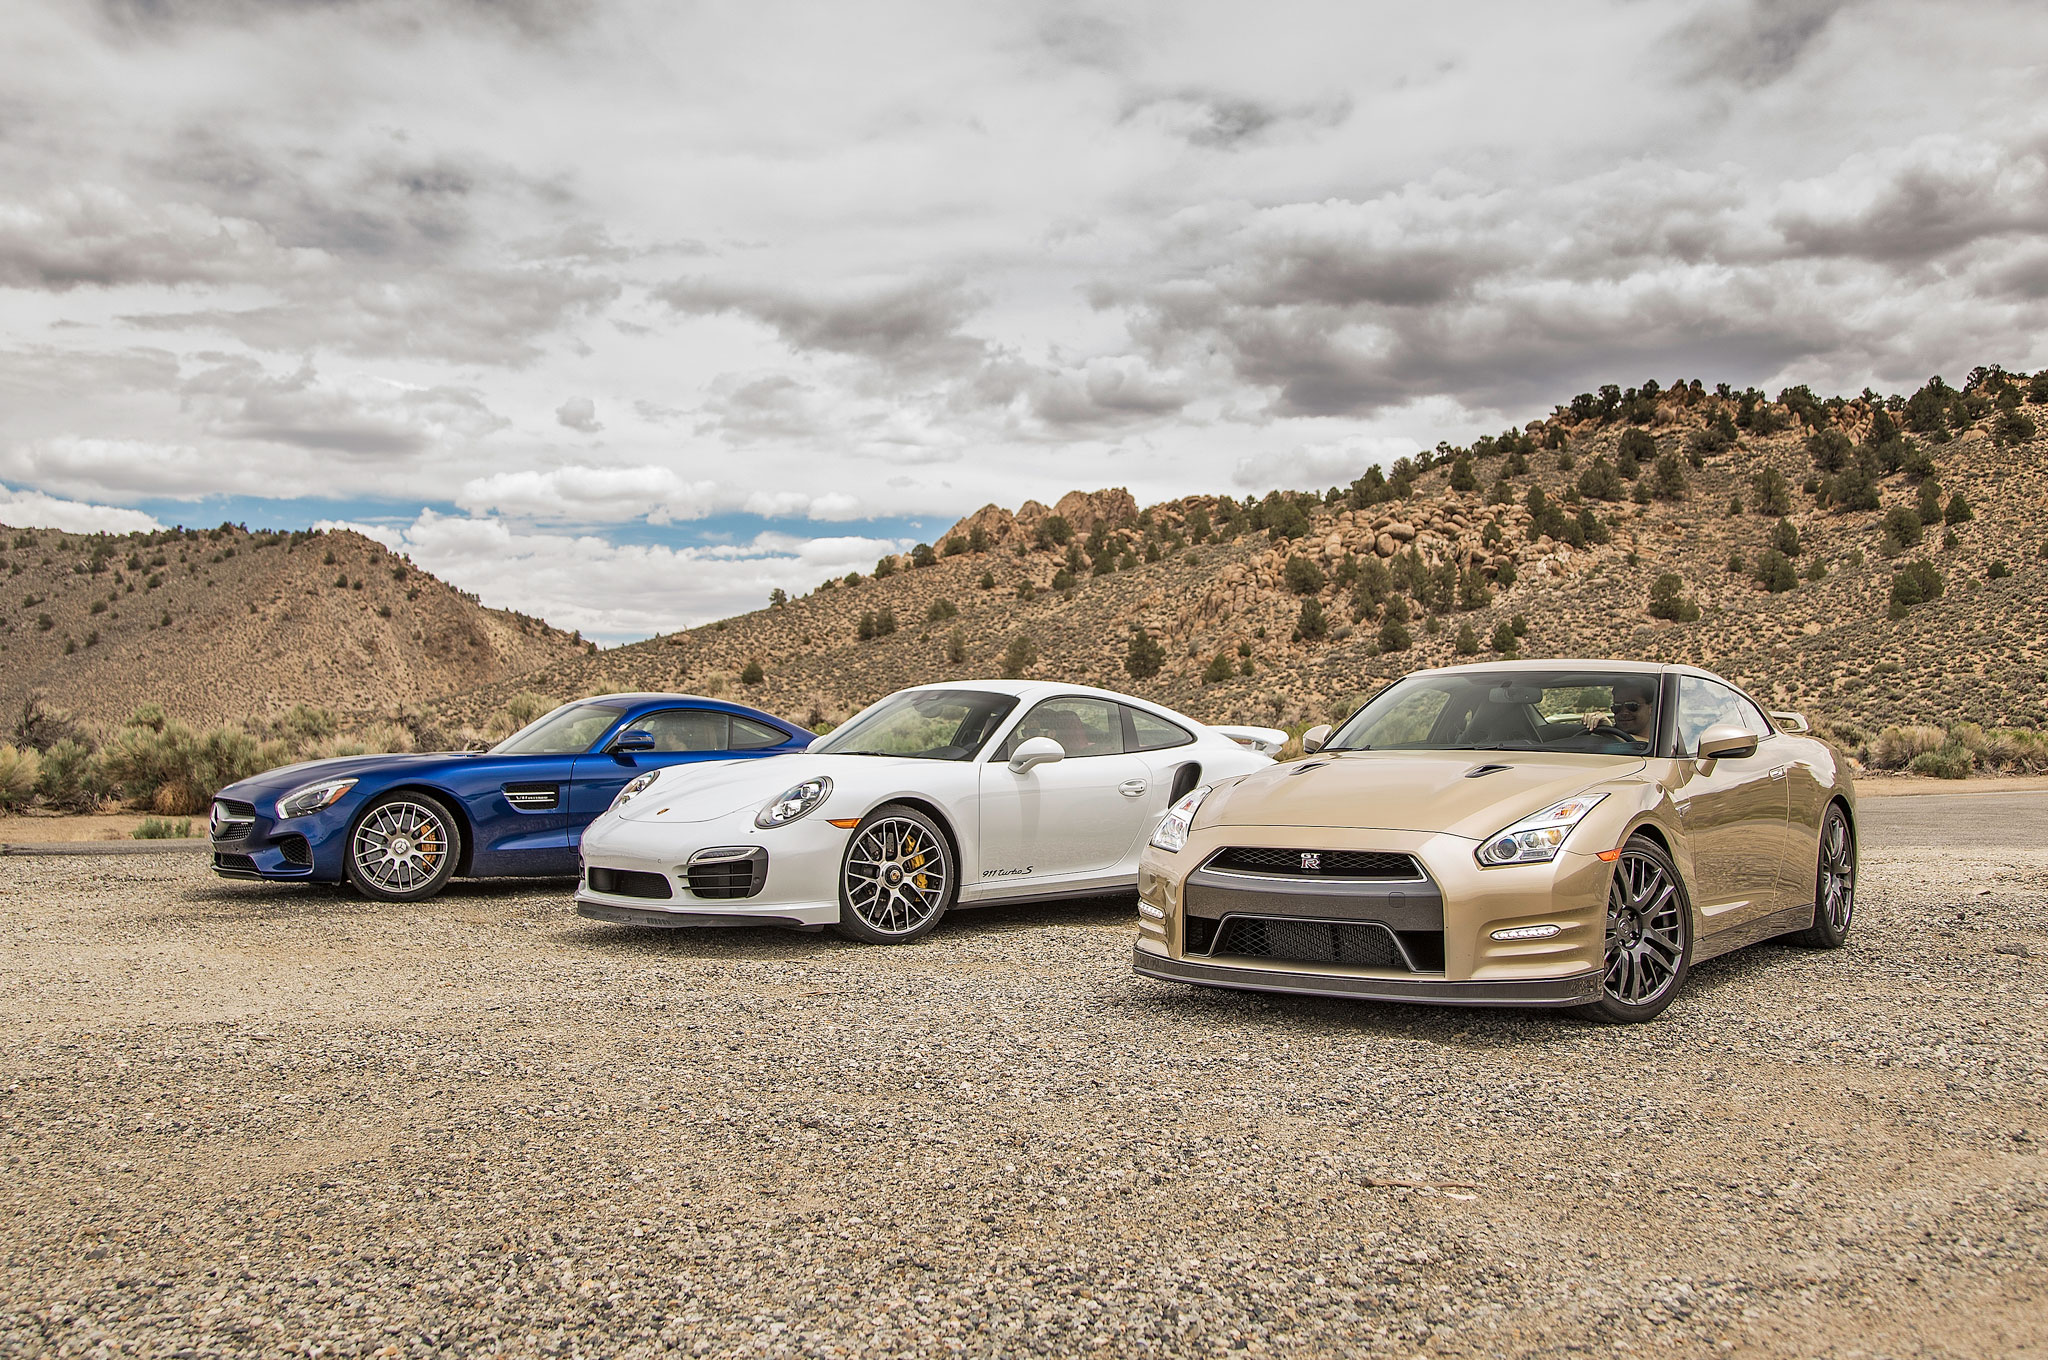 Mercedes amg gt s vs porsche 911 turbo s vs nissan gt r 45th anniversary comparison motortrend